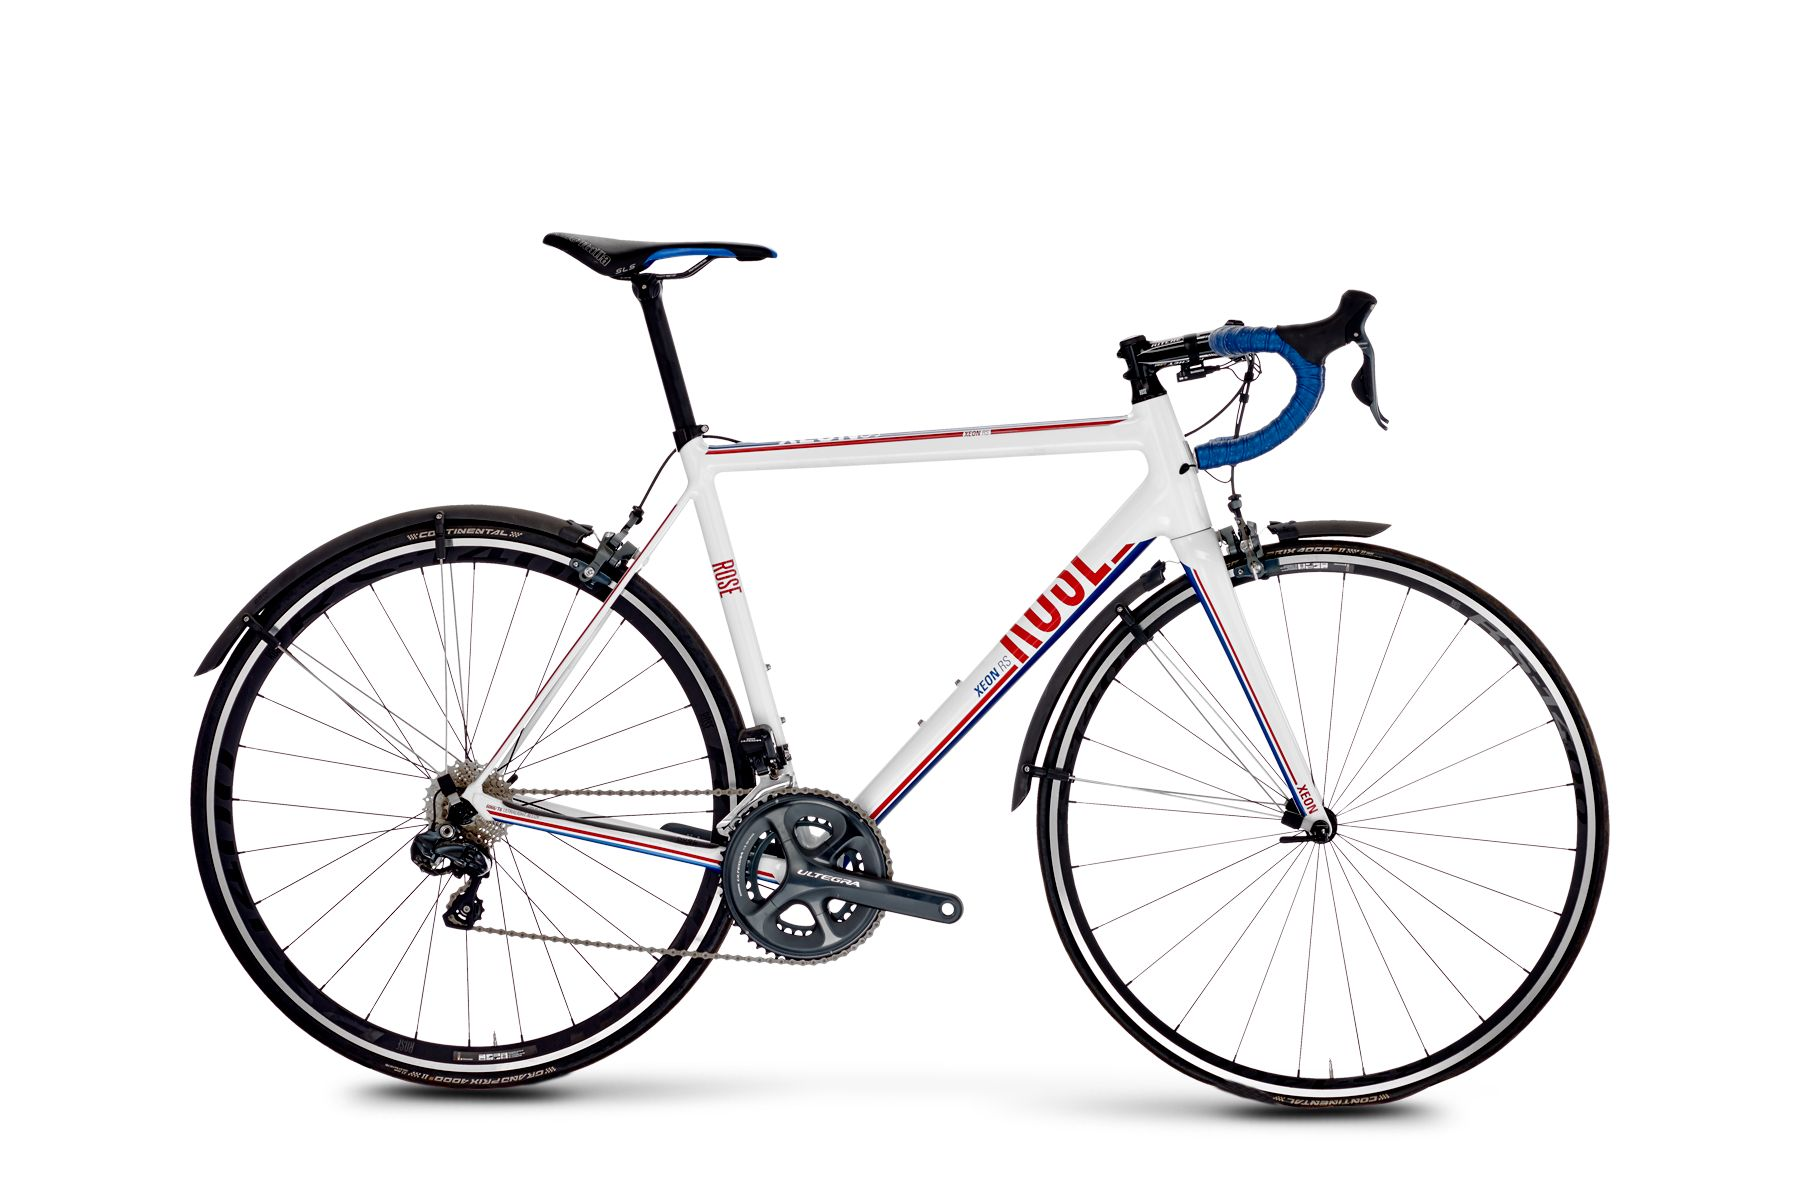 XEON RS Ultegra Di2 Second-Hand Bike Size: 57cm